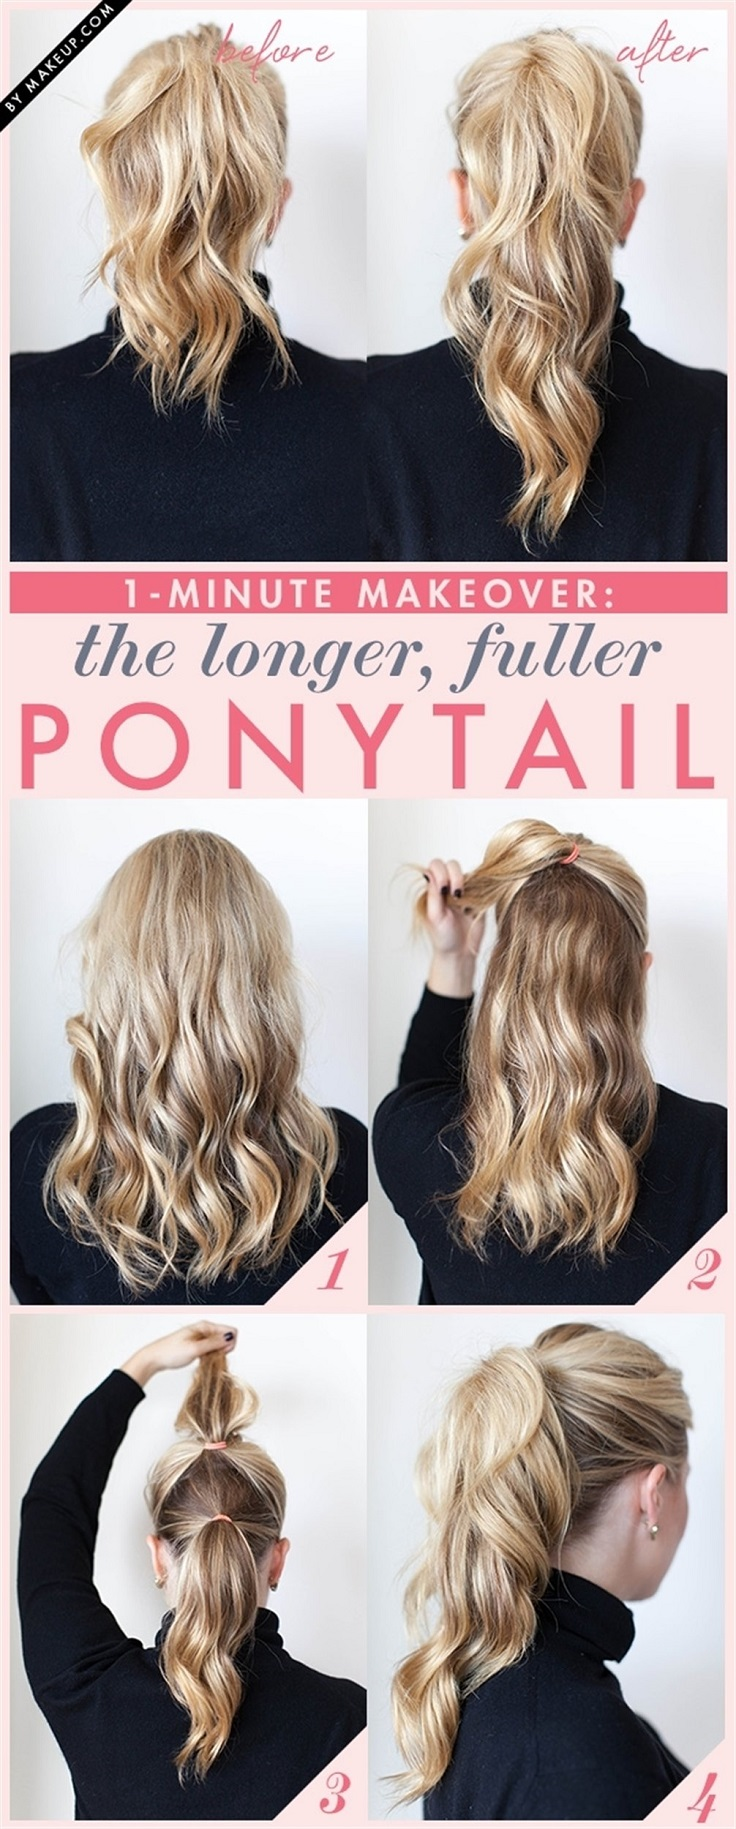 fuller and longer ponytail